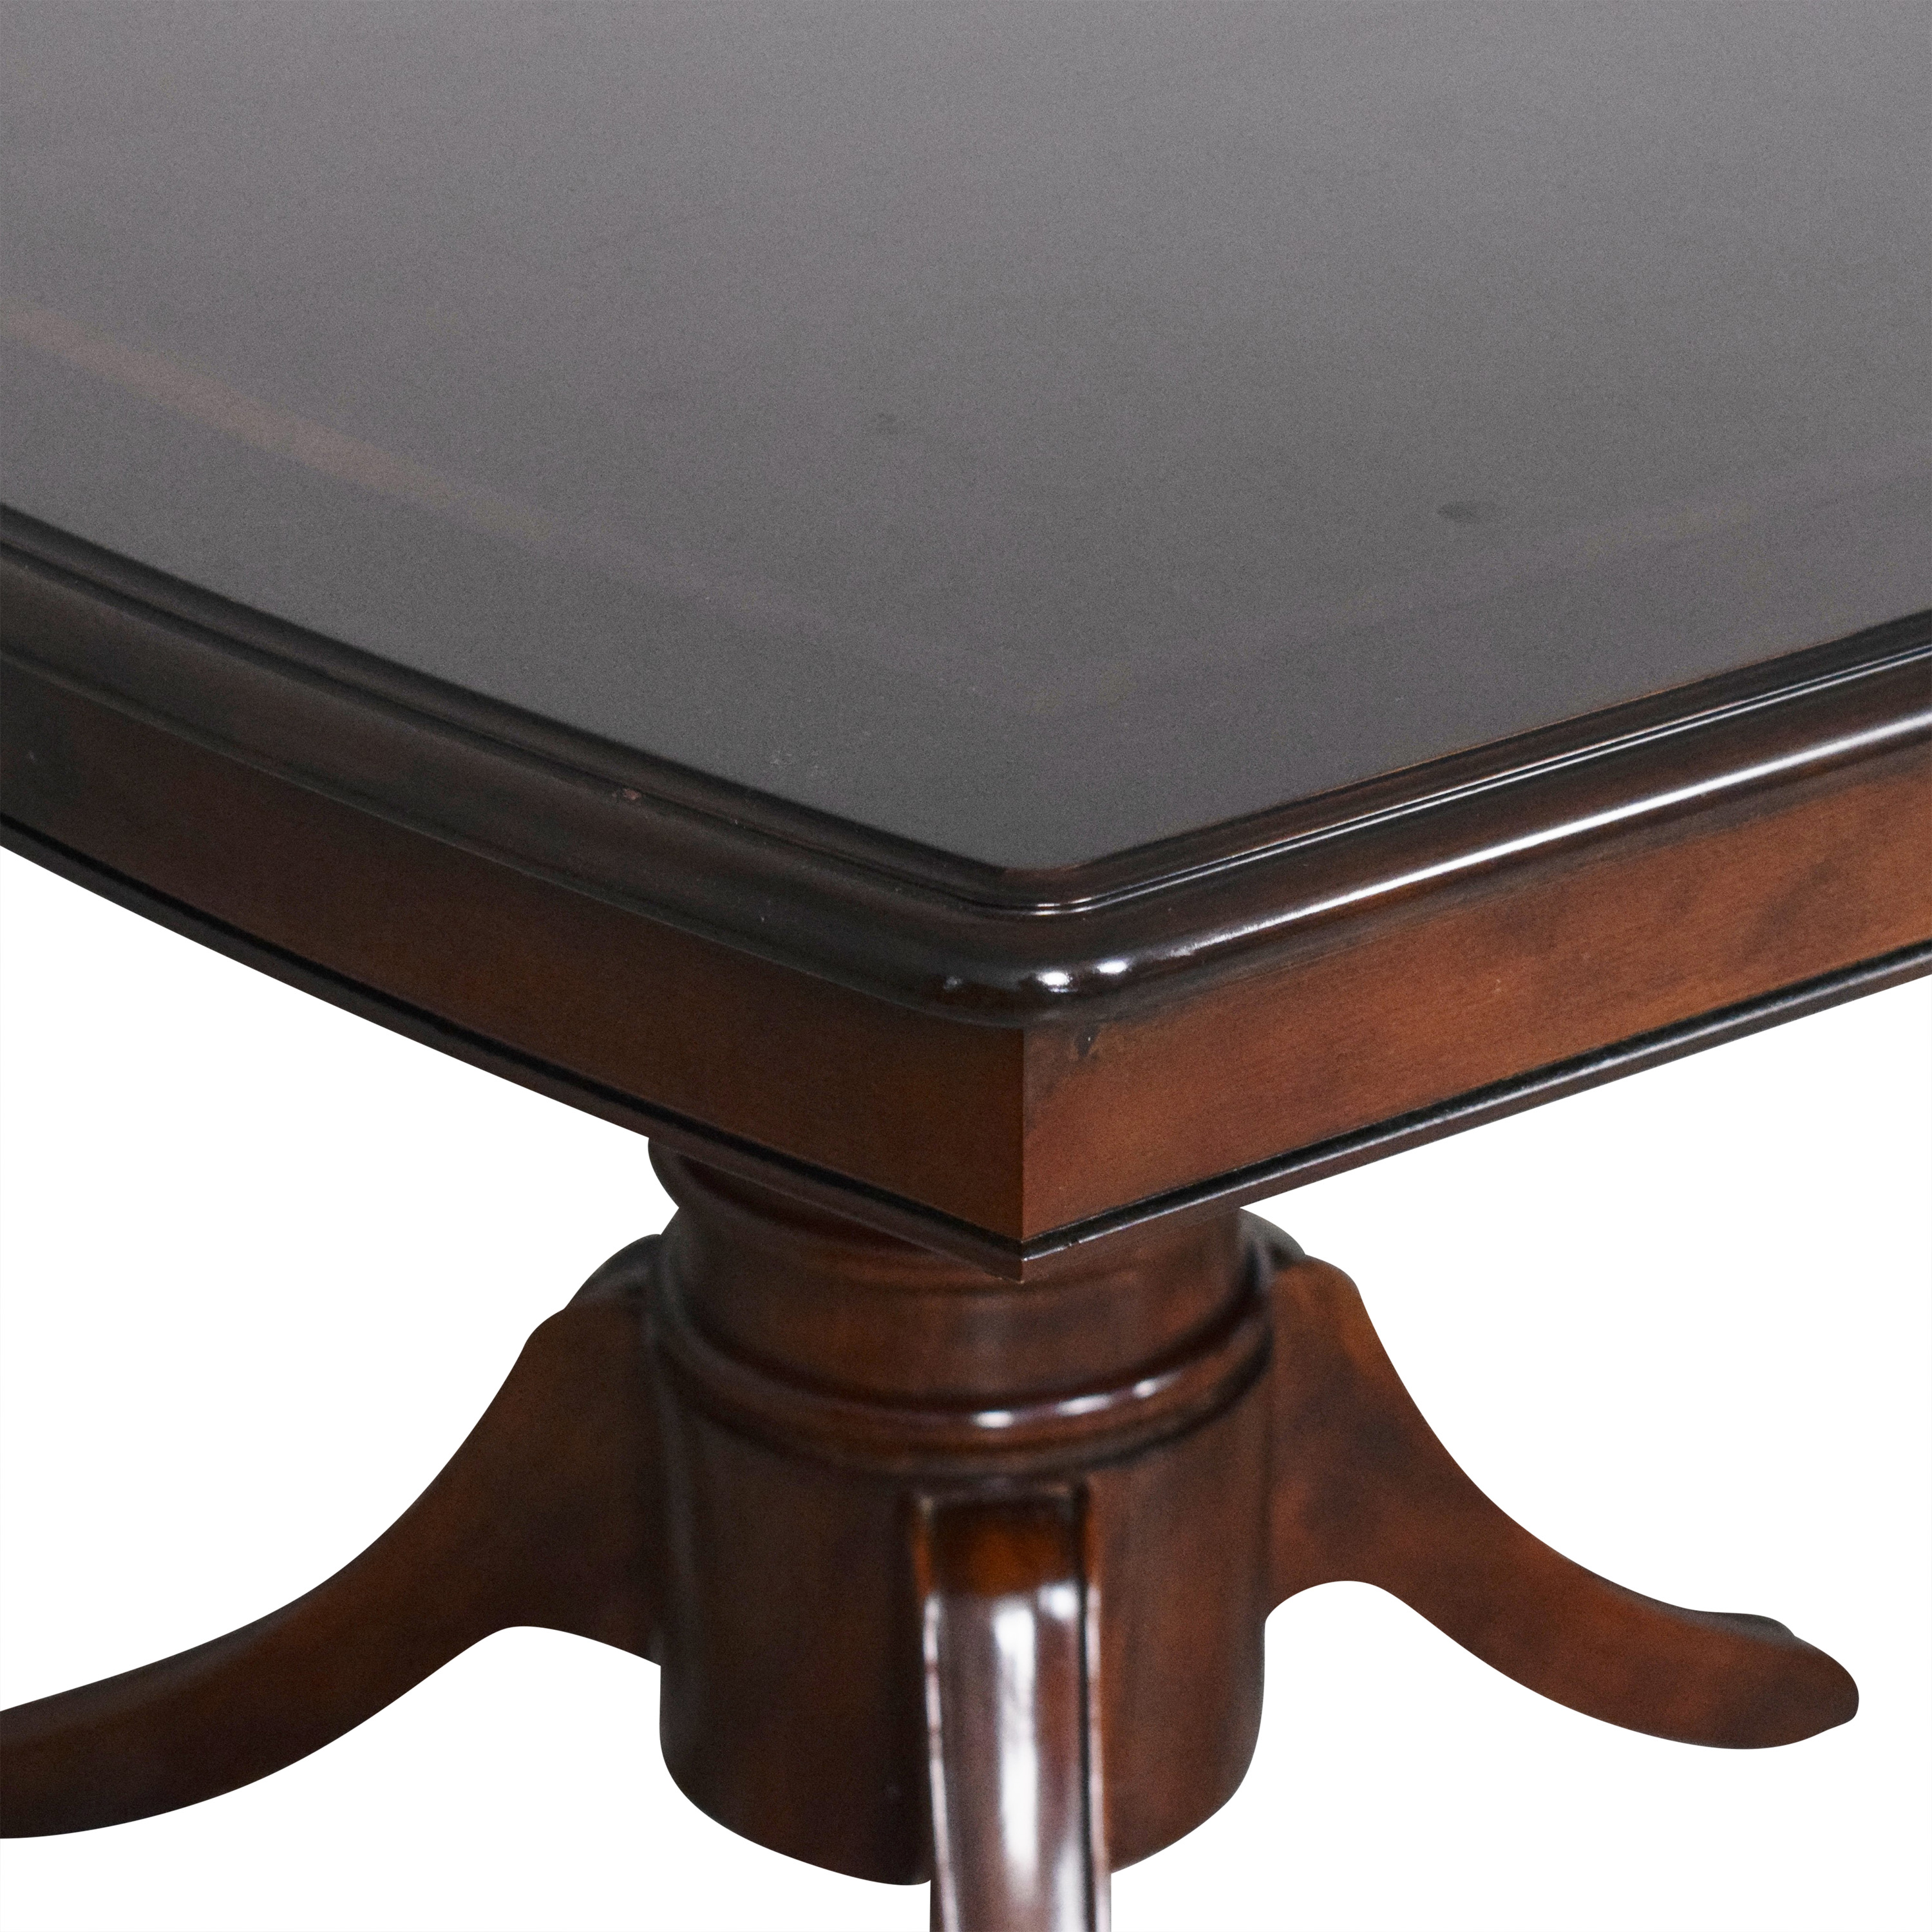 Raymour & Flanigan Raymour & Flanigan Extendable Dining Table dark brown